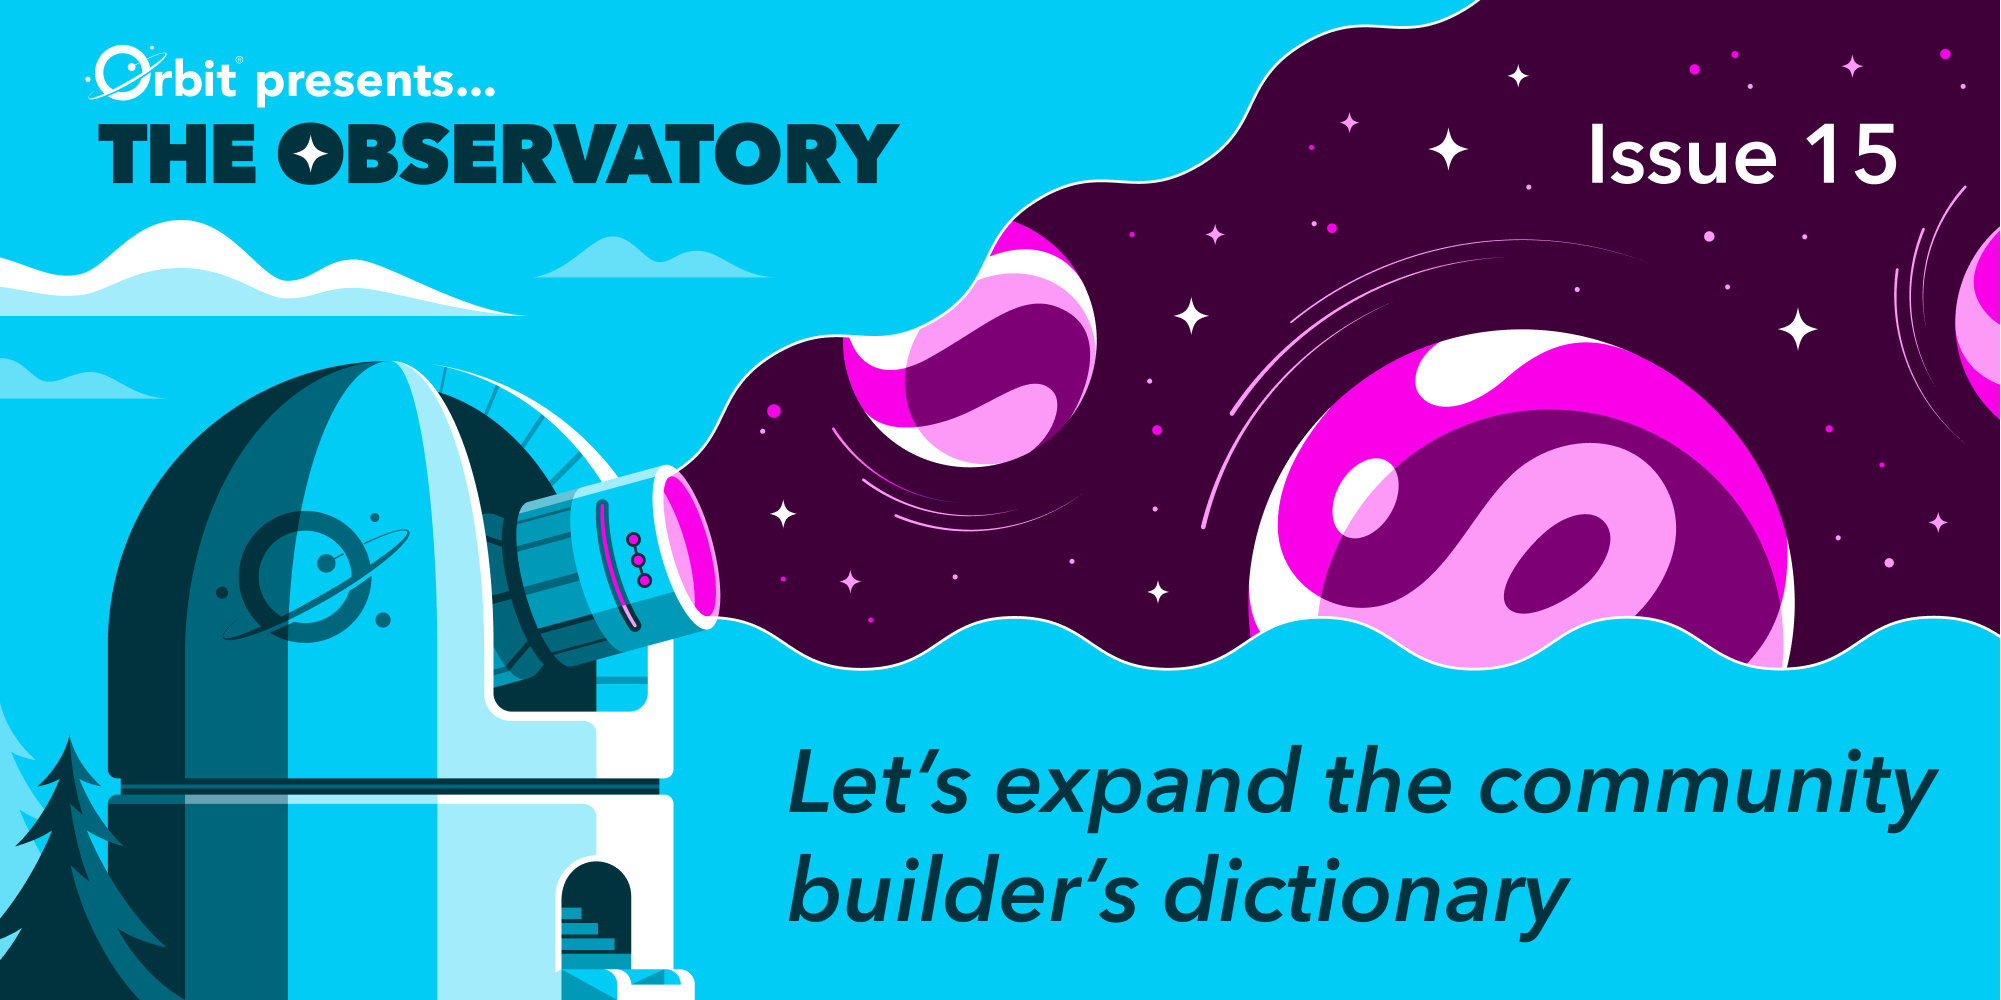 Let's expand the community builder's dictionary